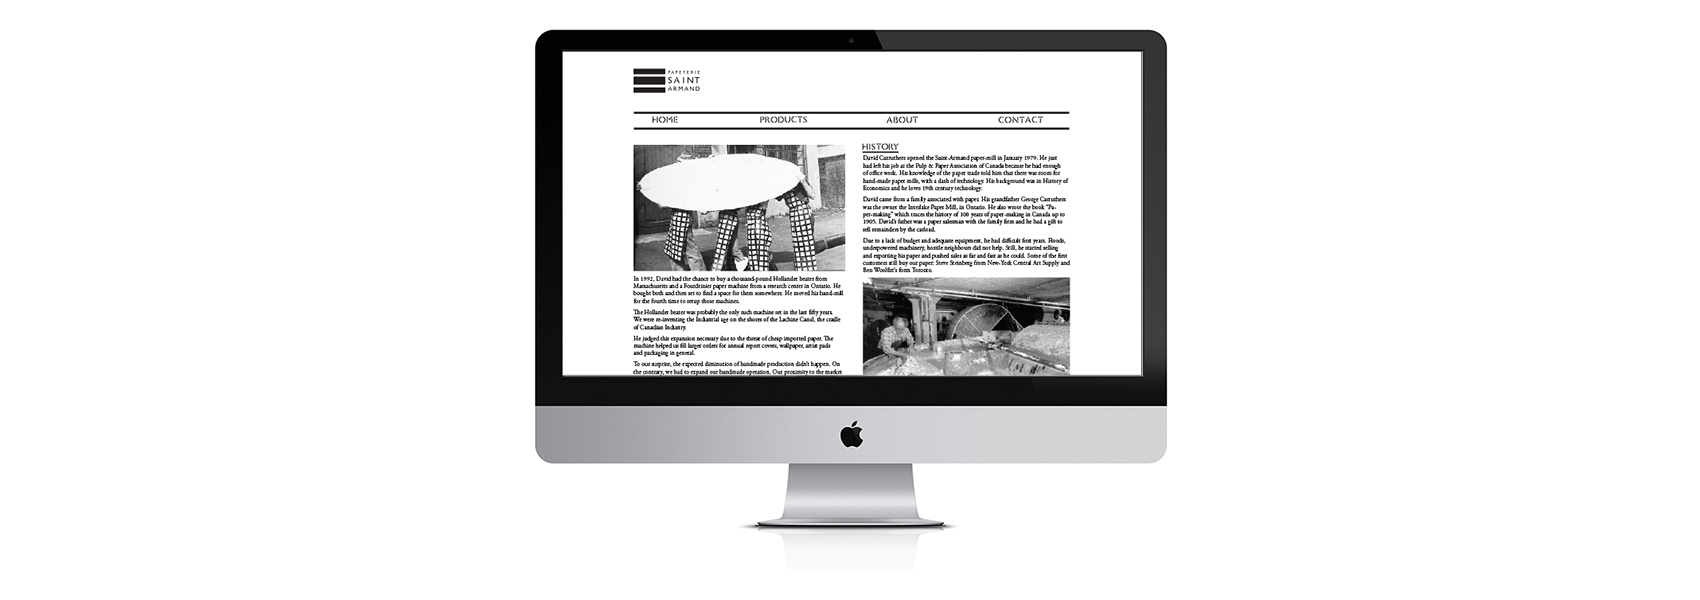 Website design for Papeterie Saint Armand